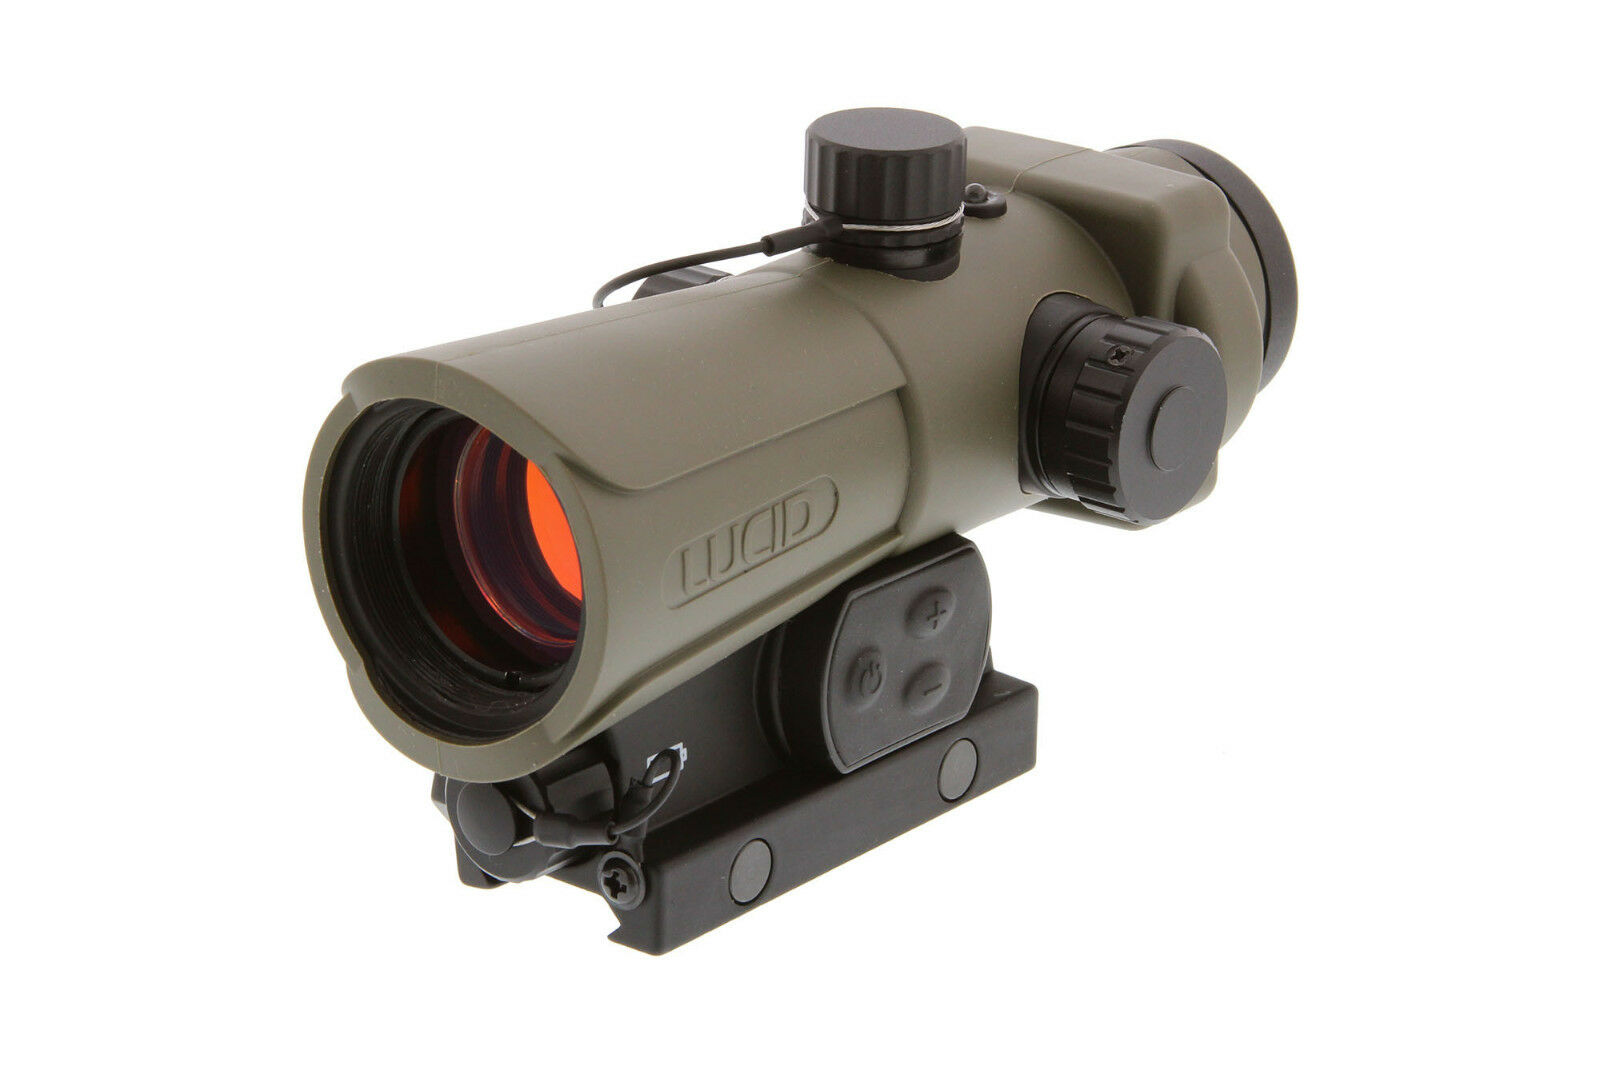 Lucid HD7 Full-Size Red Dot Sight (Gen III) with User Select Reticle - Tan